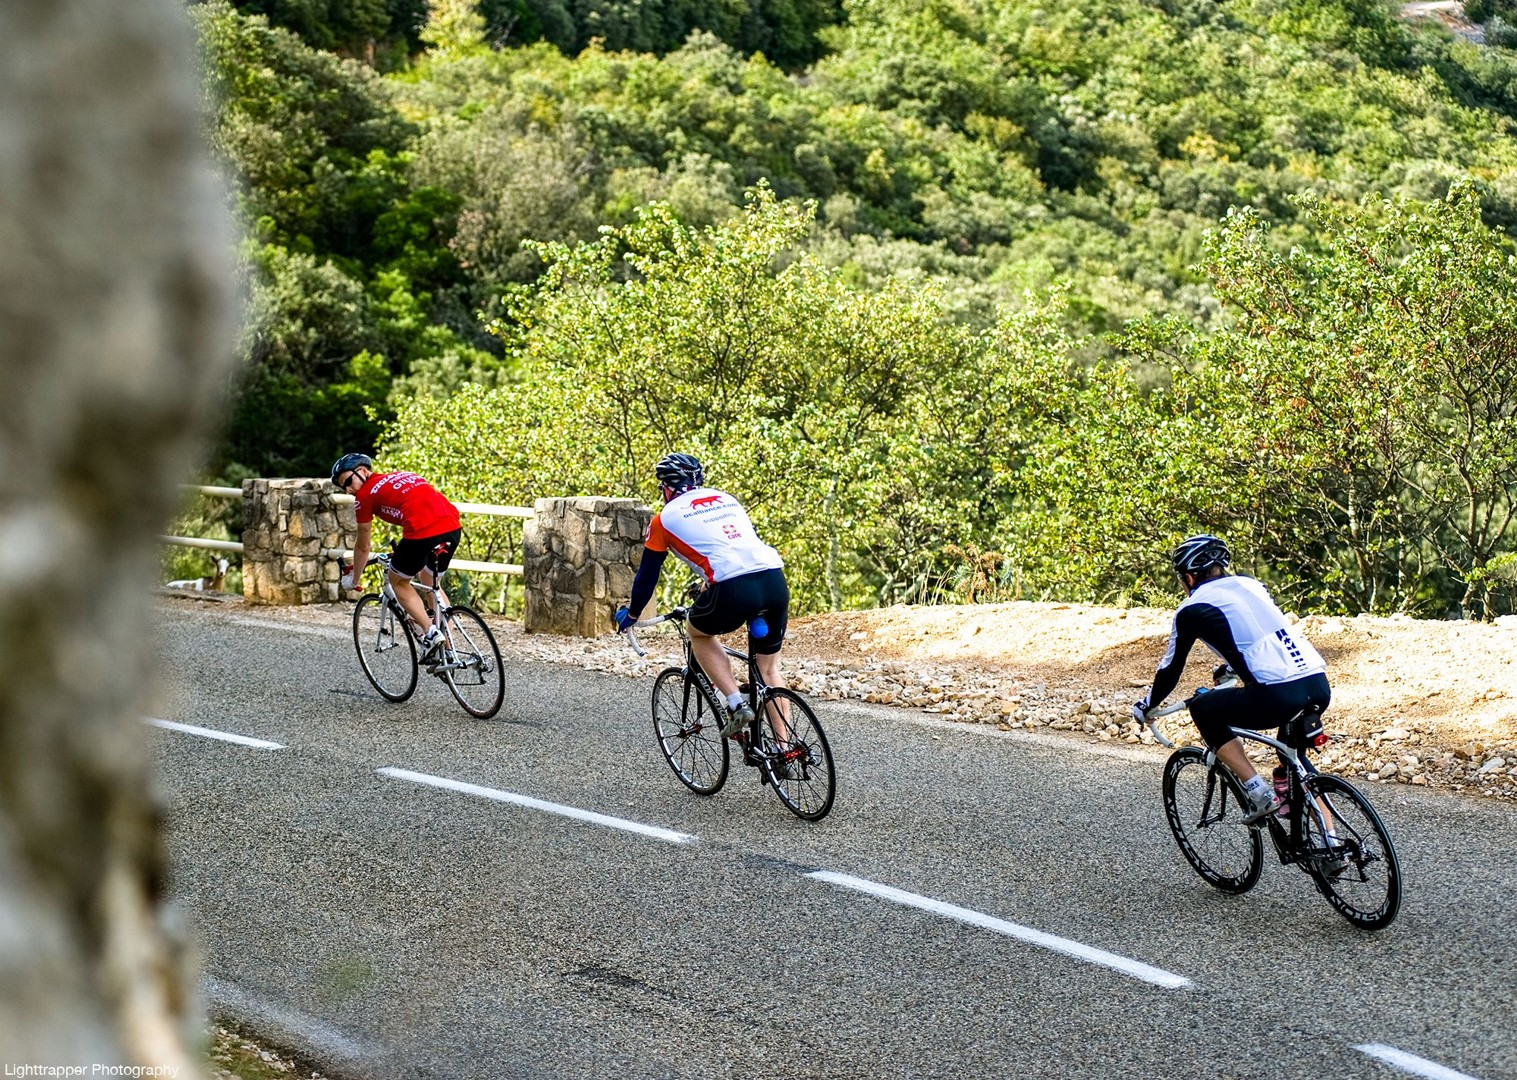 saddle-skedaddle-france-holiday-cyclists-holidays-guided-road-cycling.jpg - France - Ardeche to Carcassonne - Guided Road Cycling Holiday - Road Cycling